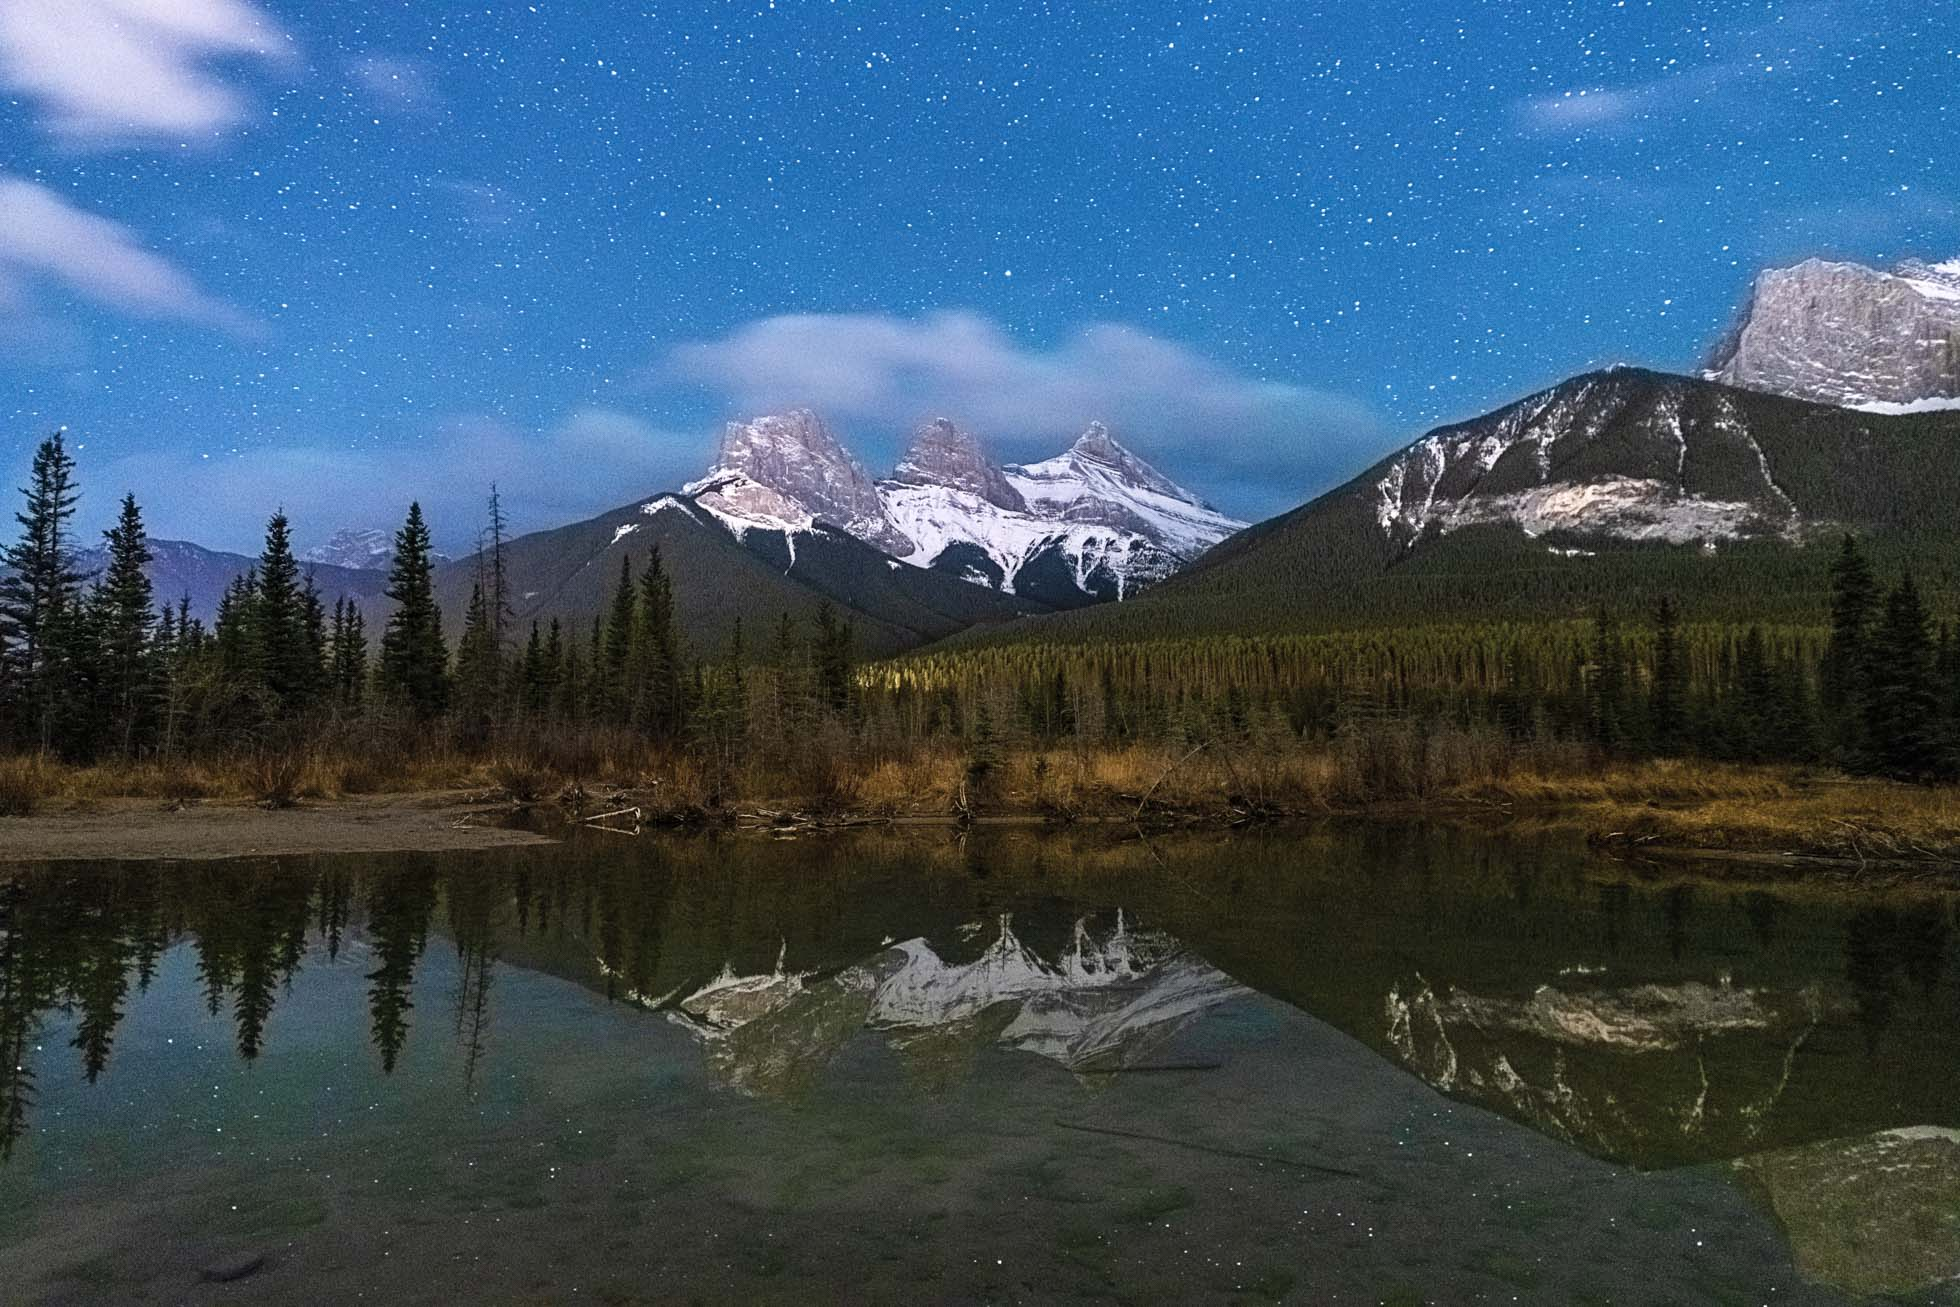 A starry evening at the Three Sisters in Canmore, Alberta Canada